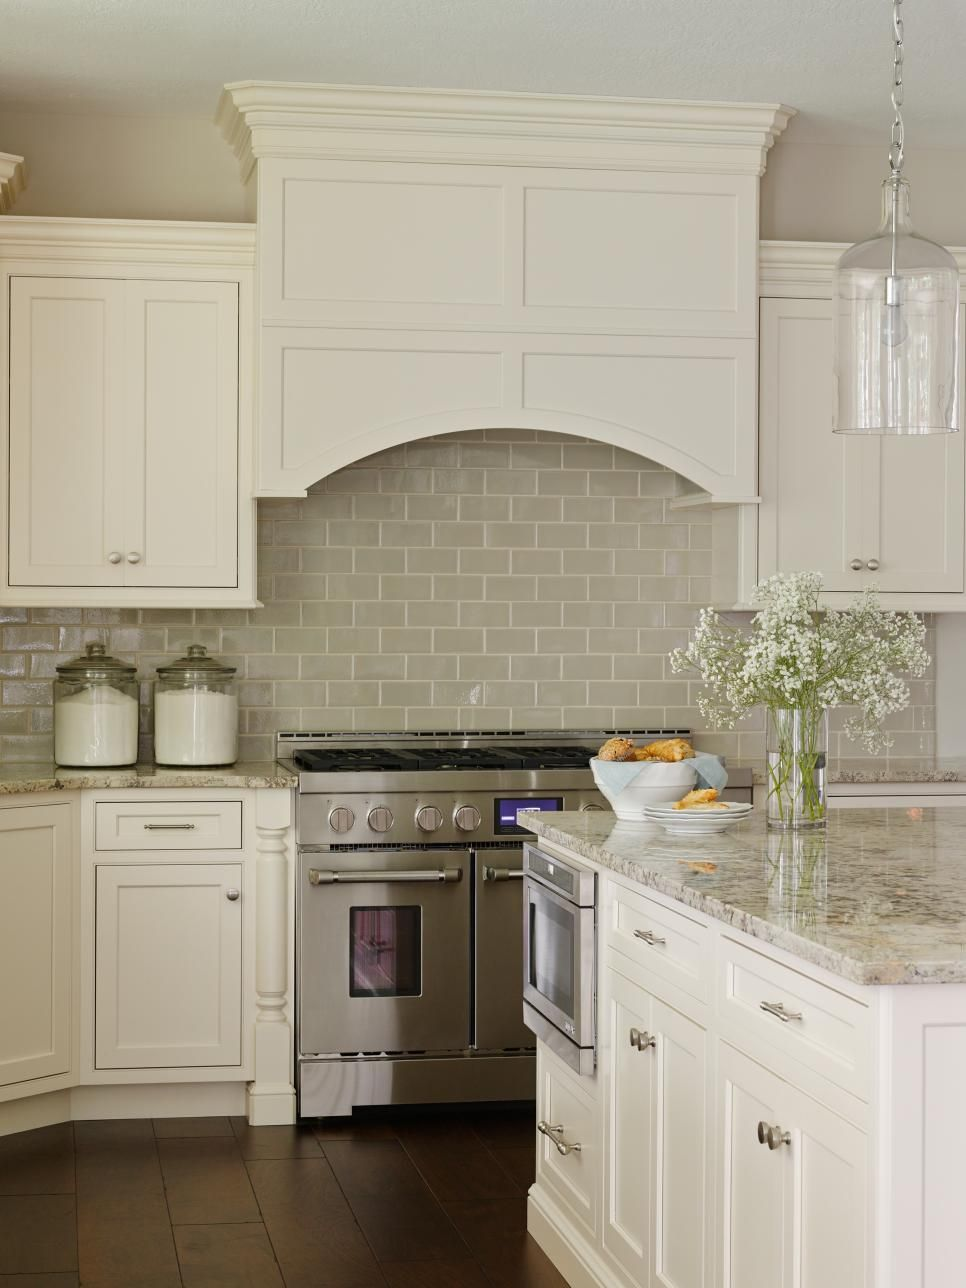 Best 25+ Backsplash In Kitchen Ideas On Pinterest